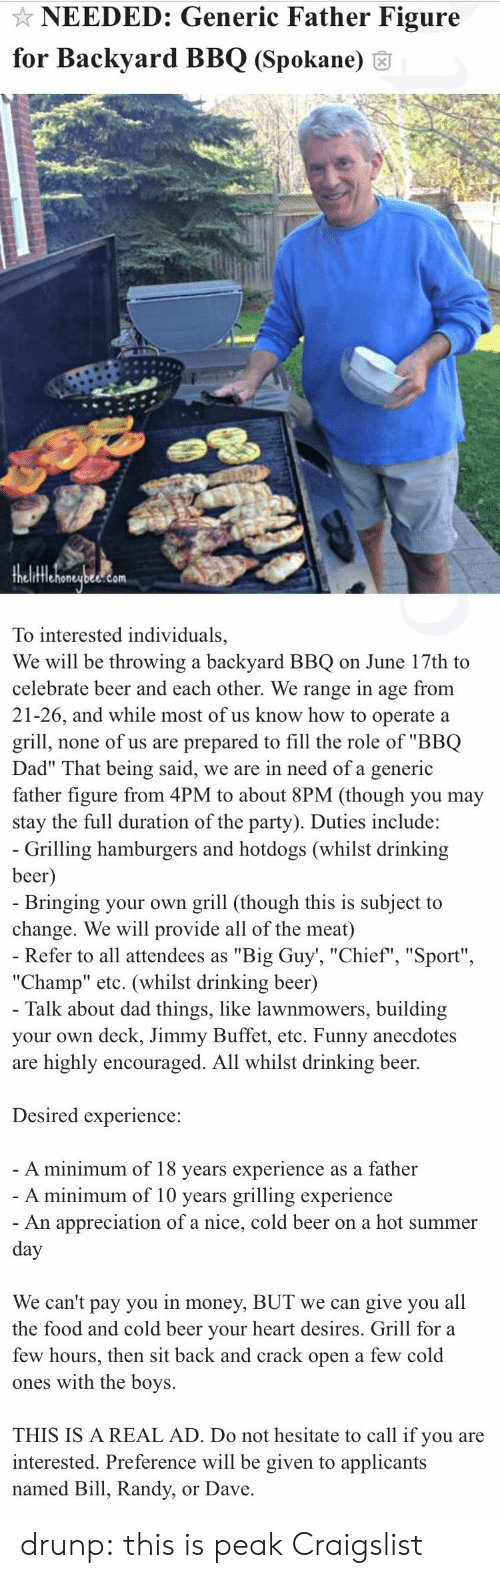 """All The Foods: NEEDED: Generic Father Figure  for Backyard BBQ (Spokane) 6  fflehoneubee.com  To interested individuals,  We will be throwing a backyard BBQ on June 17th to  celebrate beer and each other. We range in age from  21-26, and while most of us know how to operate a  grill, none of us are prepared to fill the role of """"BBQ  Dad"""" That being said, we are in need of a generic  father figure from 4PM to about 8PM (though you may  stay the full duration of the party). Duties include:   Grilling hamburgers and hotdogs (whilst drinking  beer  Bringing your own grill (though this is subject to  change. We will provide all of the meat)  Refer to all attendees as """"Big Guy', """"Chief"""", """"Sport""""  """"Champ"""" etc. (whilst drinking beer)  Talk about dad things, like lawnmowers, building  your own deck, Jimmy Buffet, etc. Funny anecdotes  are highly encouraged. All whilst drinking beer.  Desired experience:  A minimum of 18 vears experience as a father  A minimum of 10 years grilling experience  An appreciation of a nice, cold beer on a hot summer  We can't pay you in money, BUT we can give you all  the food and cold beer vour heart desires. Grill for a  few hours, then sit back and crack open a few cold  ones with the boys.  THIS IS A REAL AD. Do not hesitate to call if you are  interested. Preference will be given to applicants  named Bill, Randy, or Dave drunp: this is peak Craigslist"""